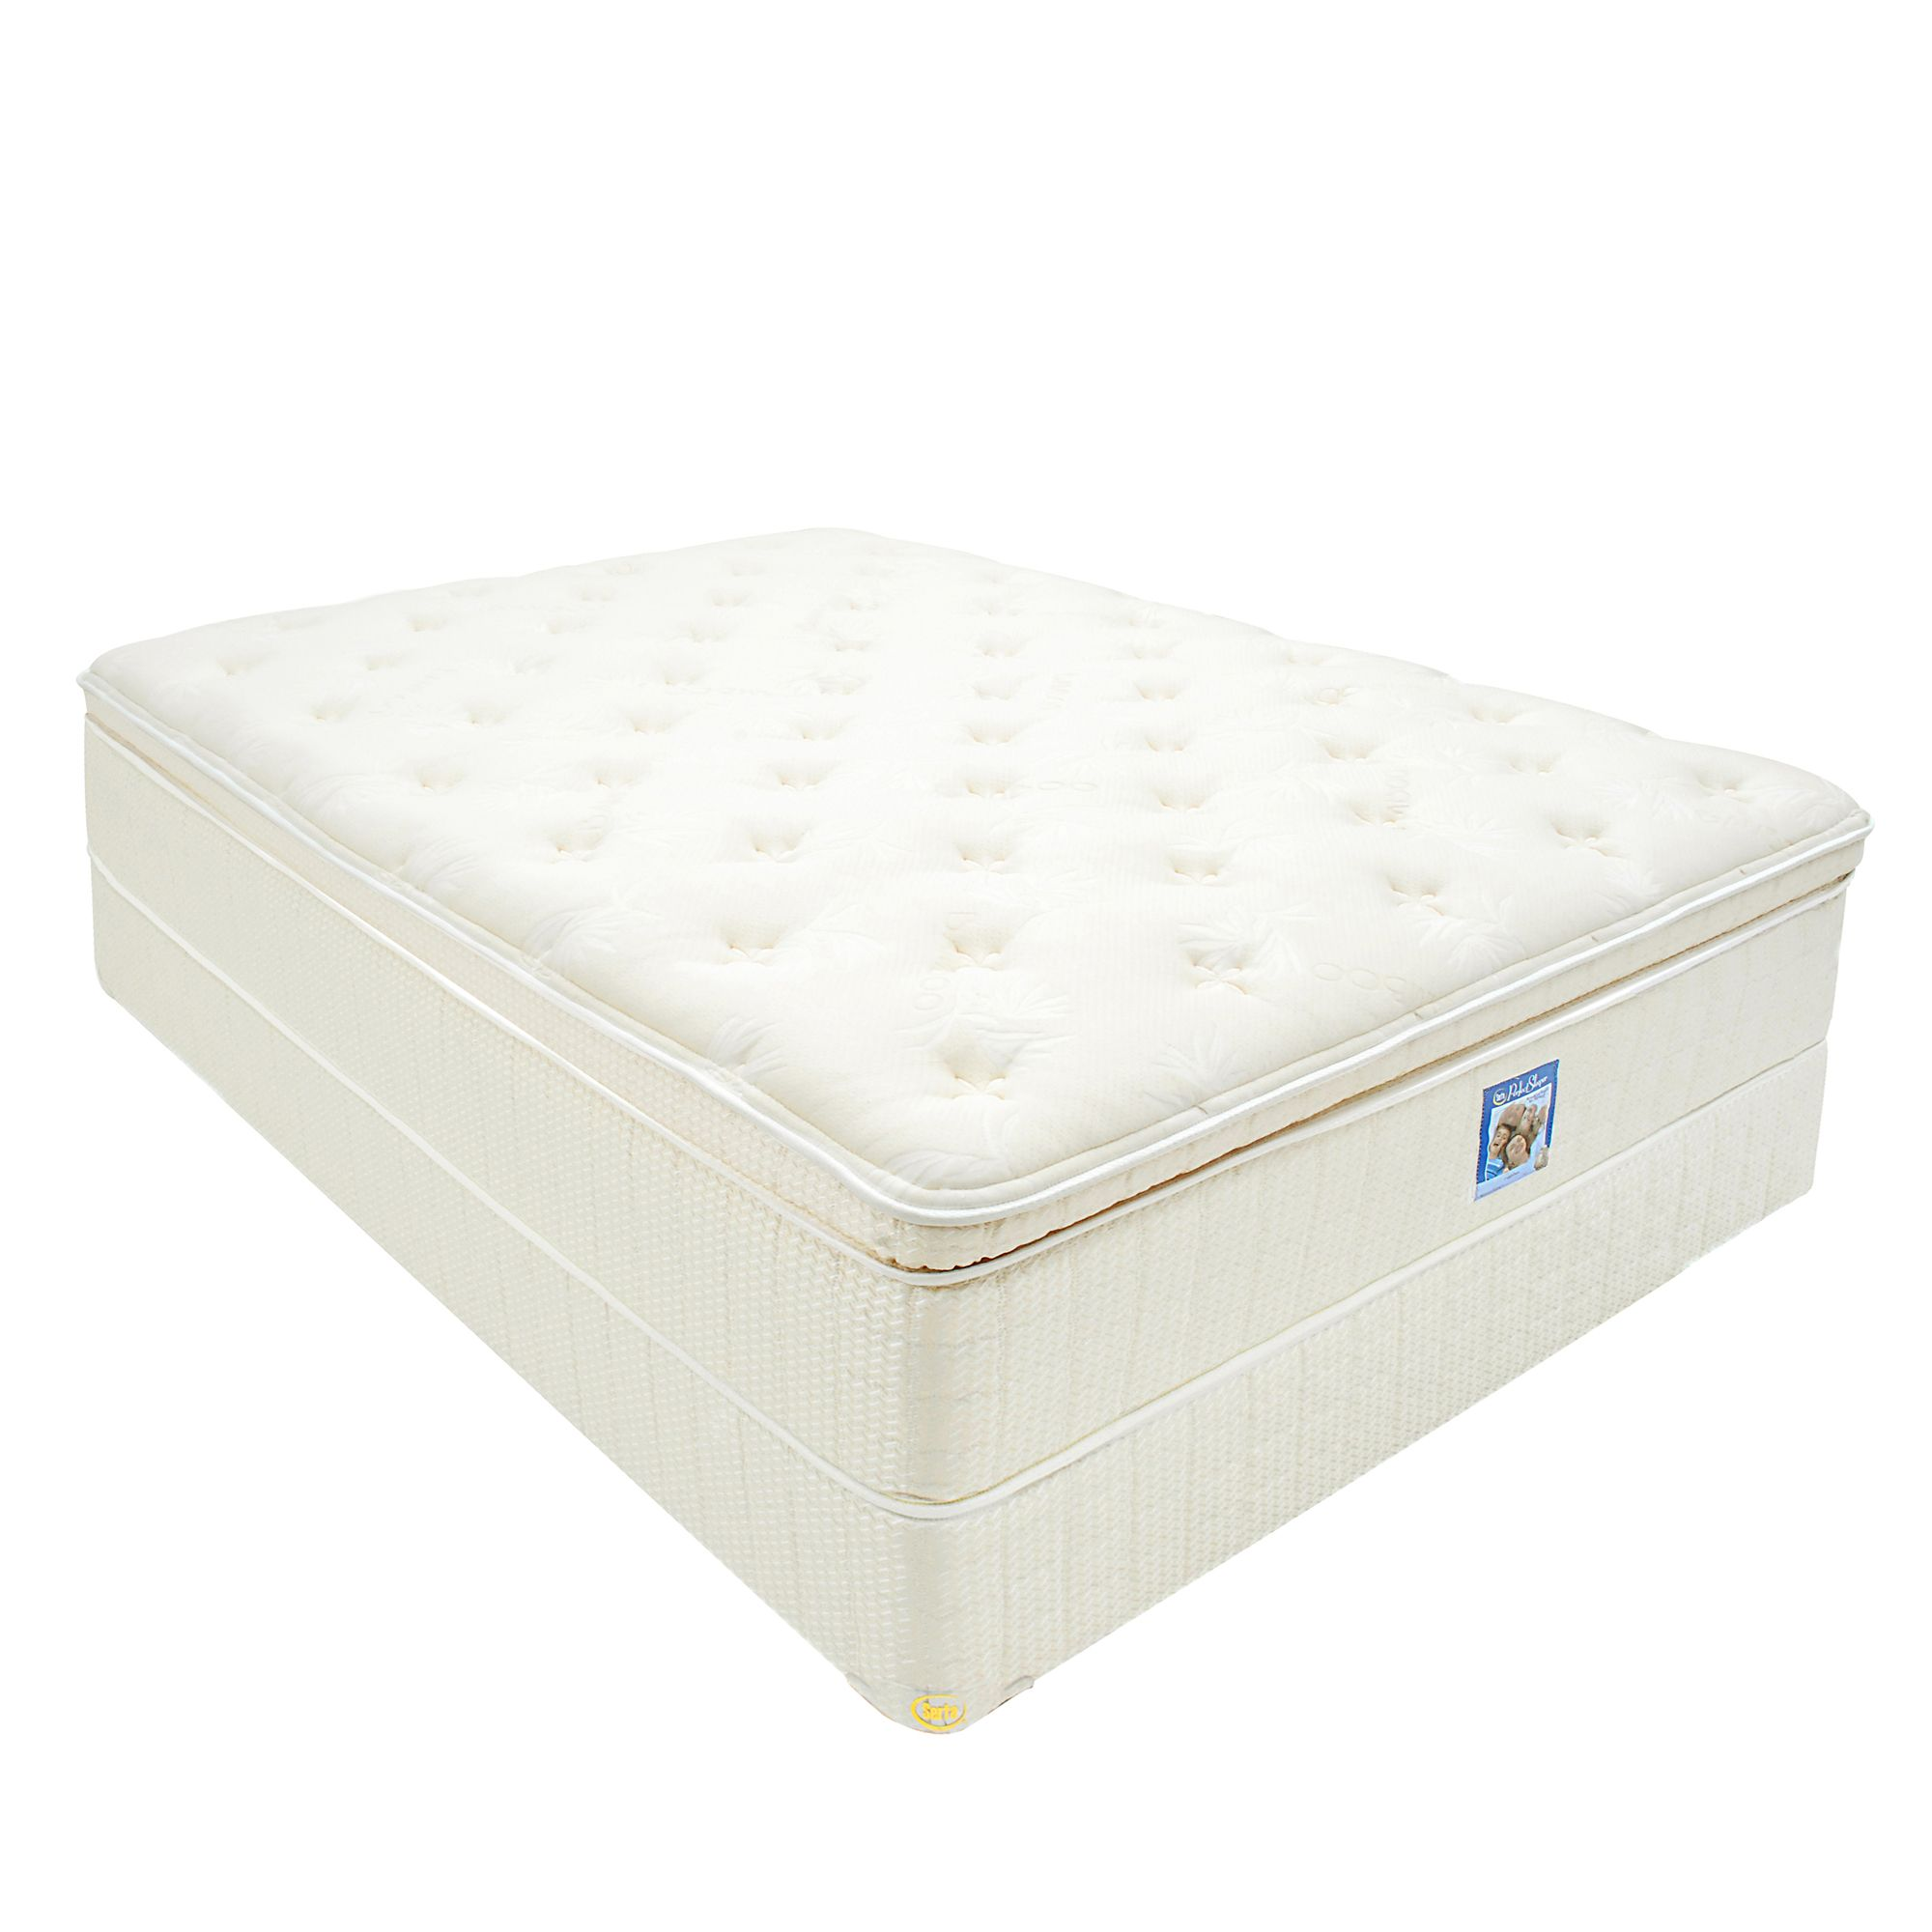 Perfect-Sleeper-Reese-Limited-Firm-EuroTop-King-Mattress-Only